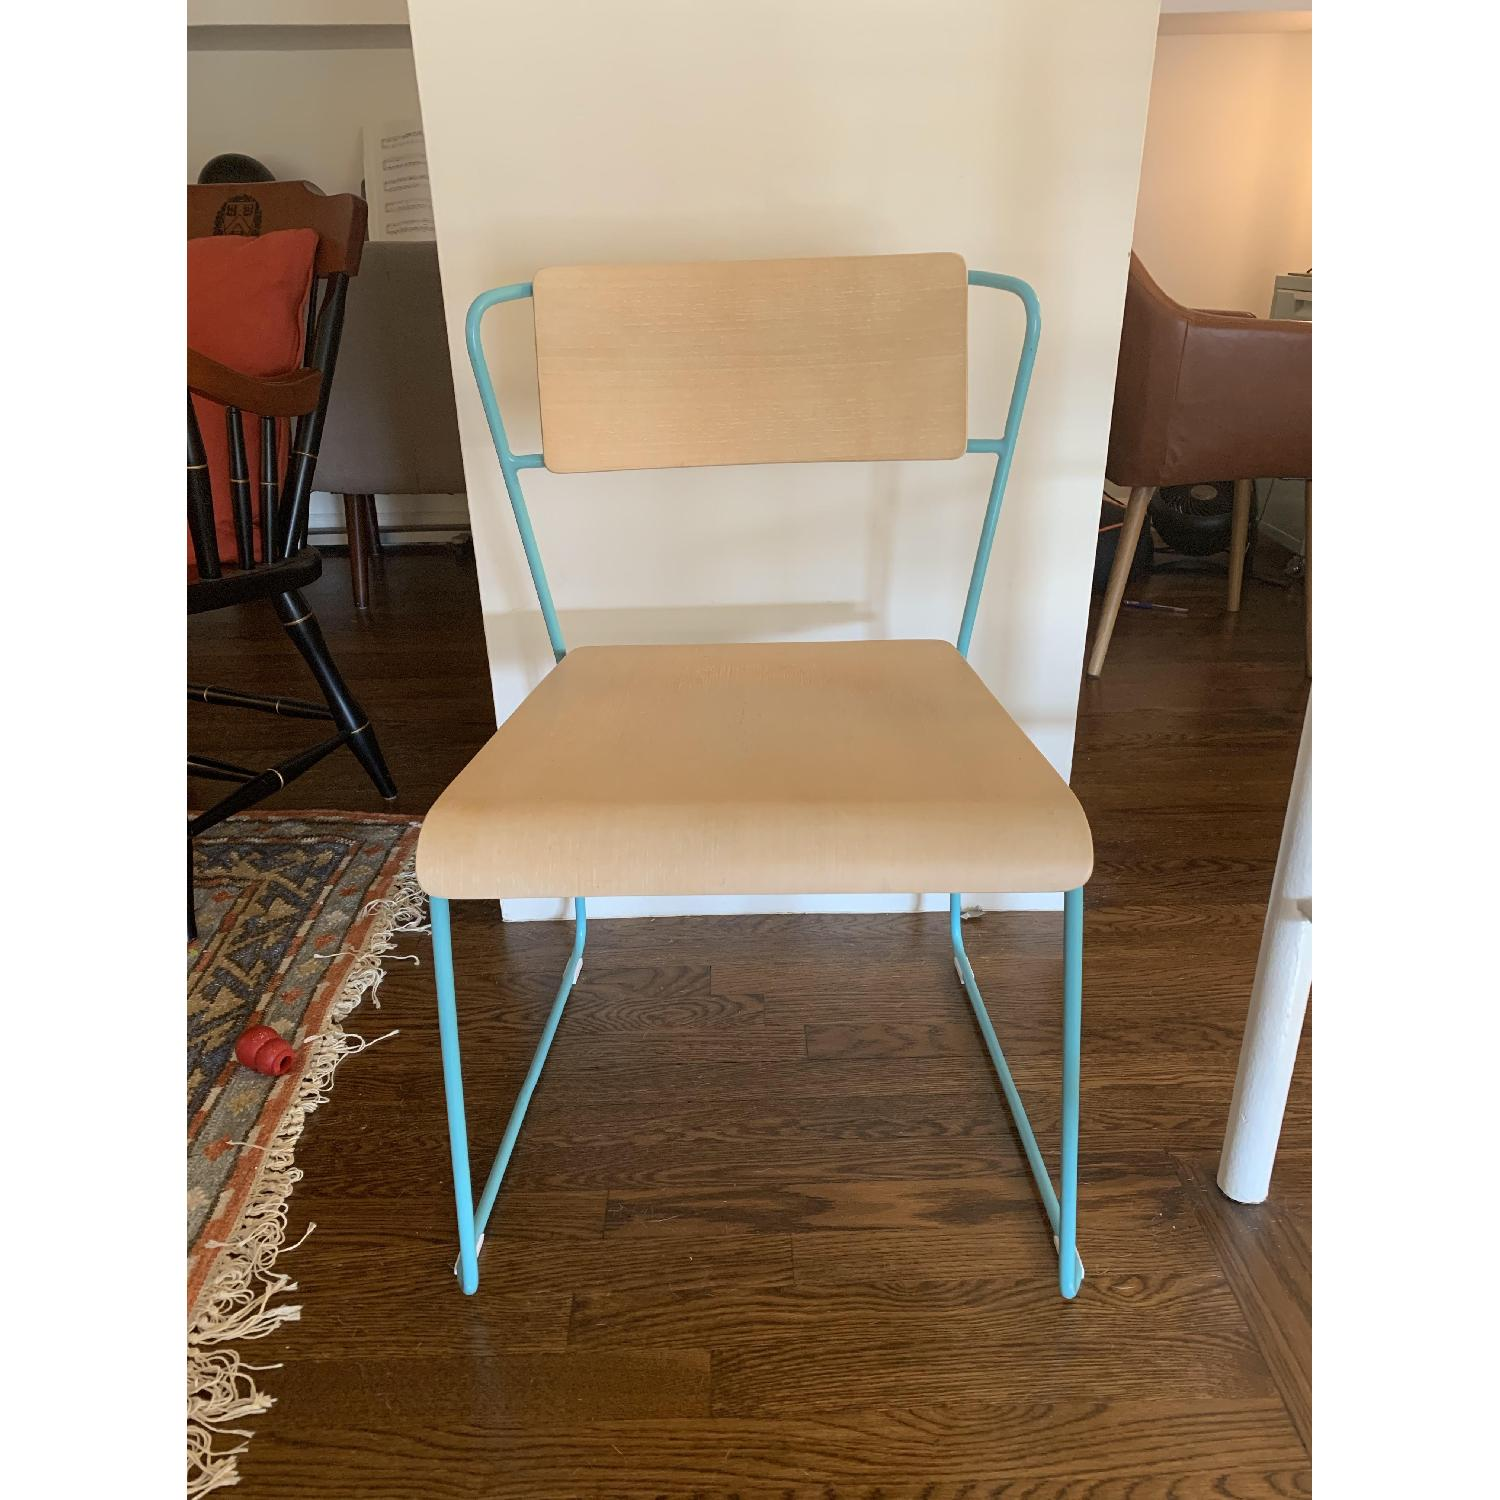 Industry West Transit Chairs in Peppermint - image-3